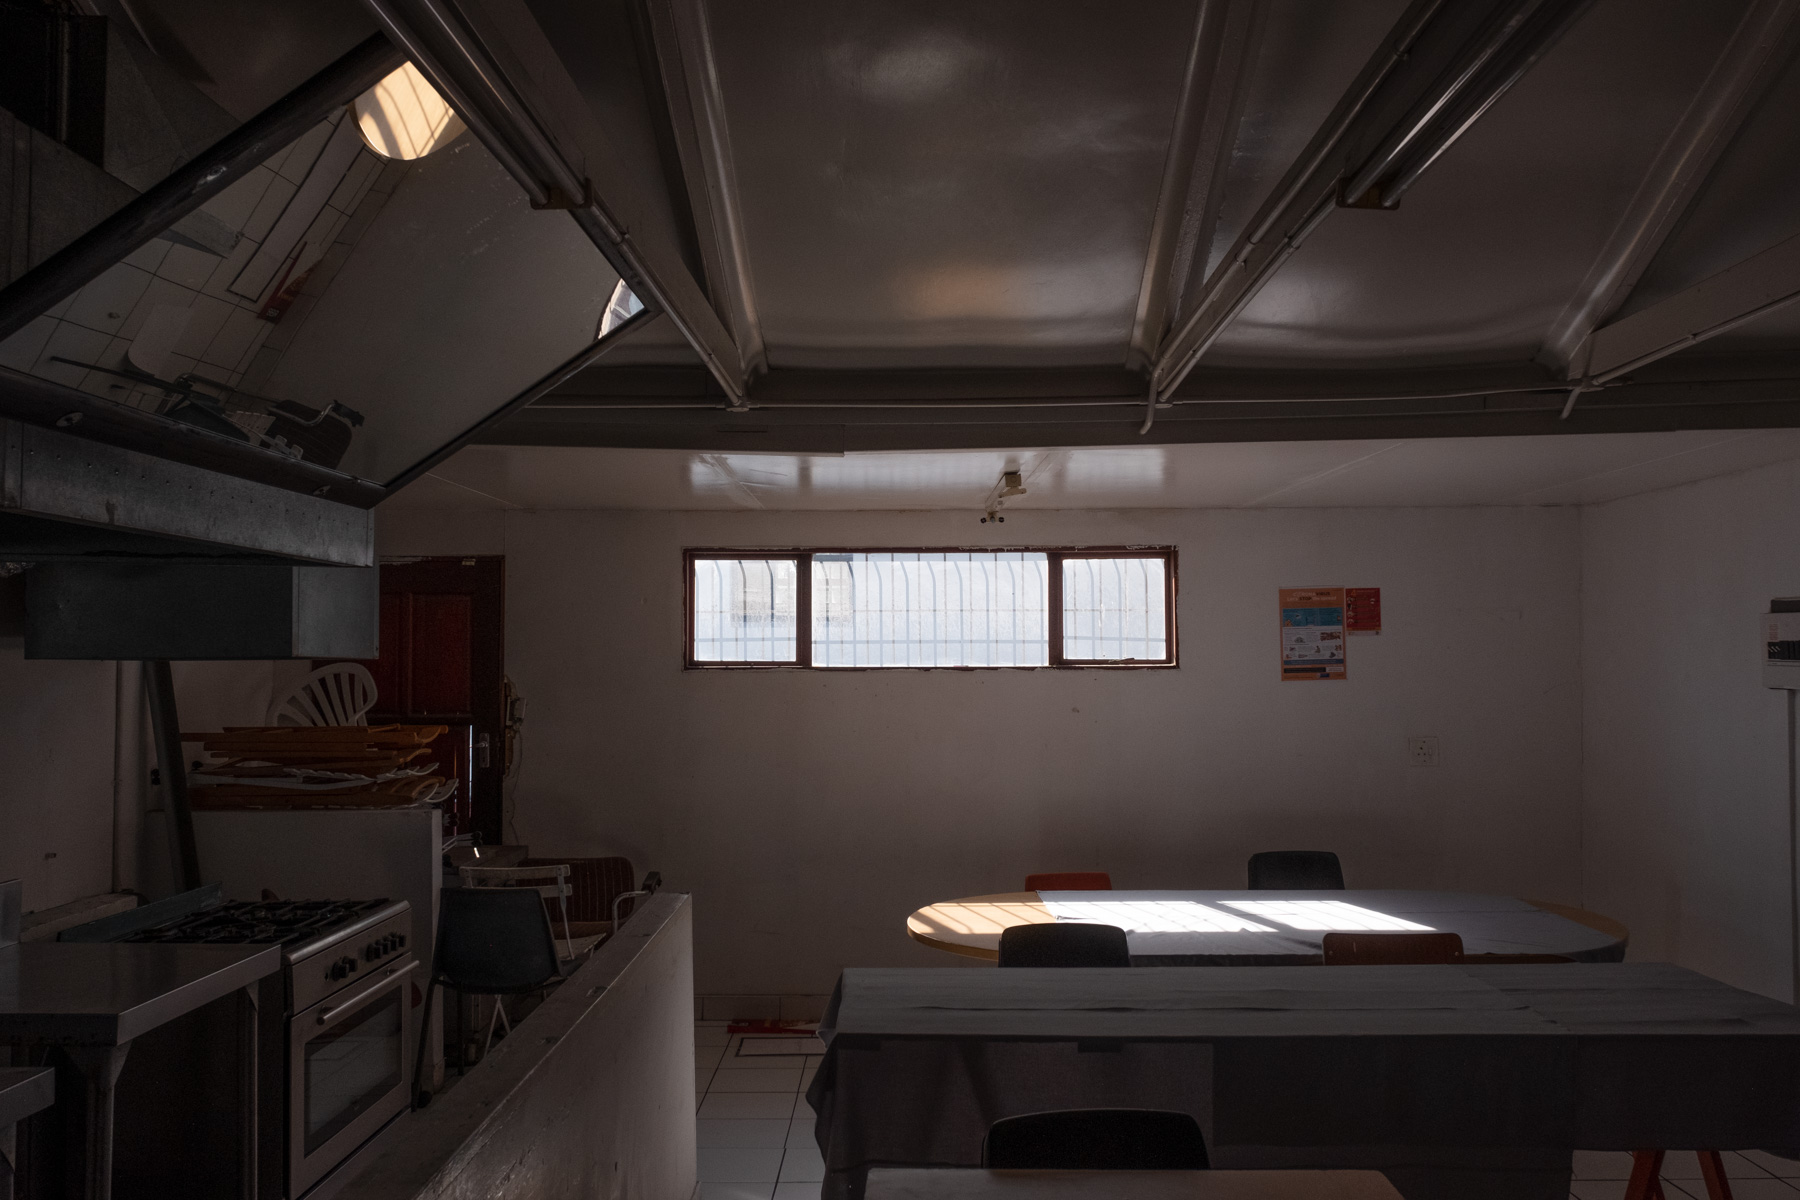 20 May 2020: Eziko students are taught in a spacious room with tables and chairs for theory and a kitchen for practicals.